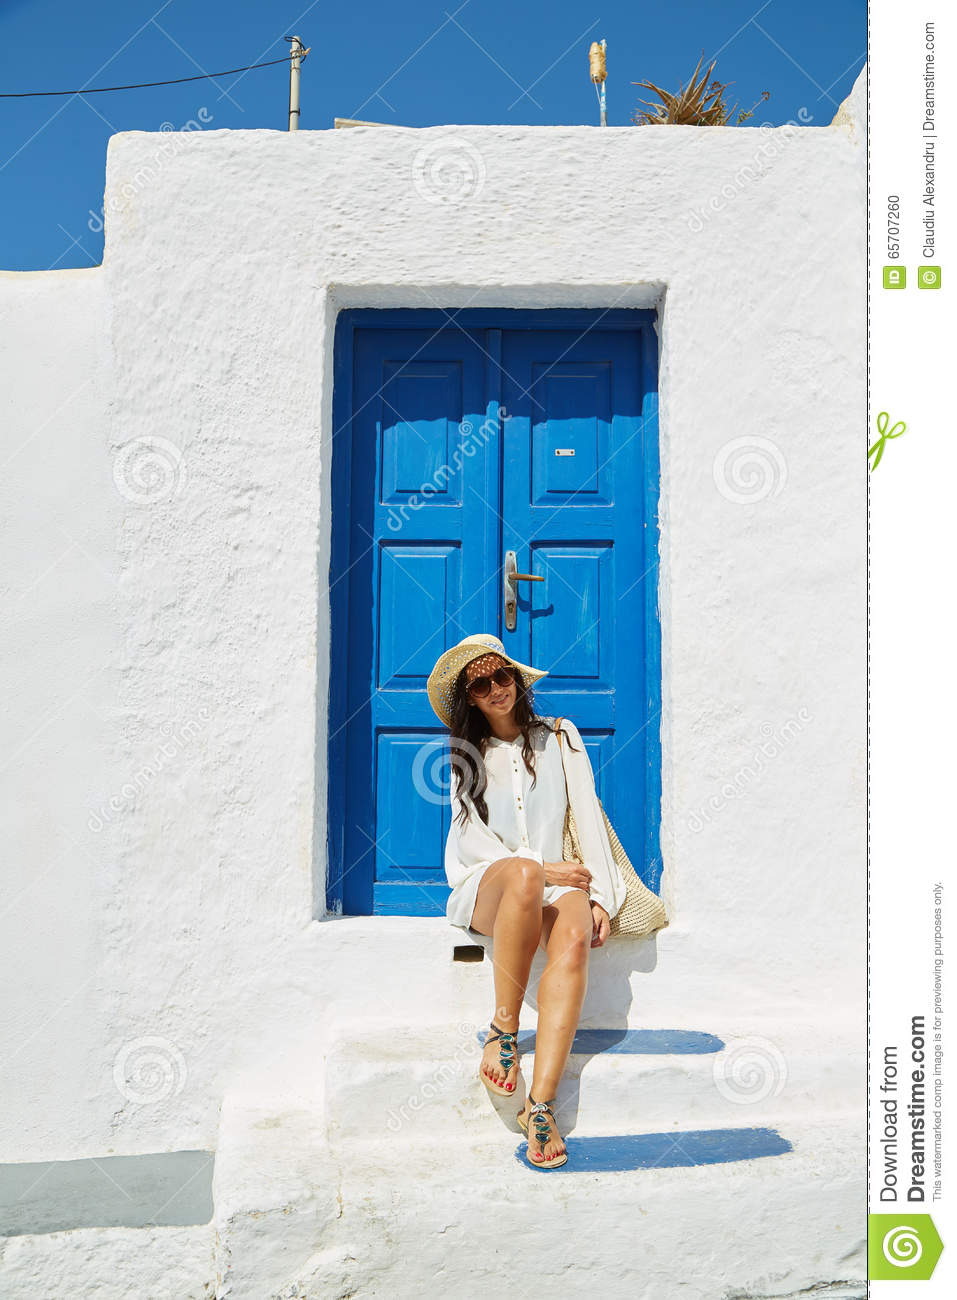 Download comp - Woman Sitting In Front Of A Blue Vintage Entrance Door Stock Photo